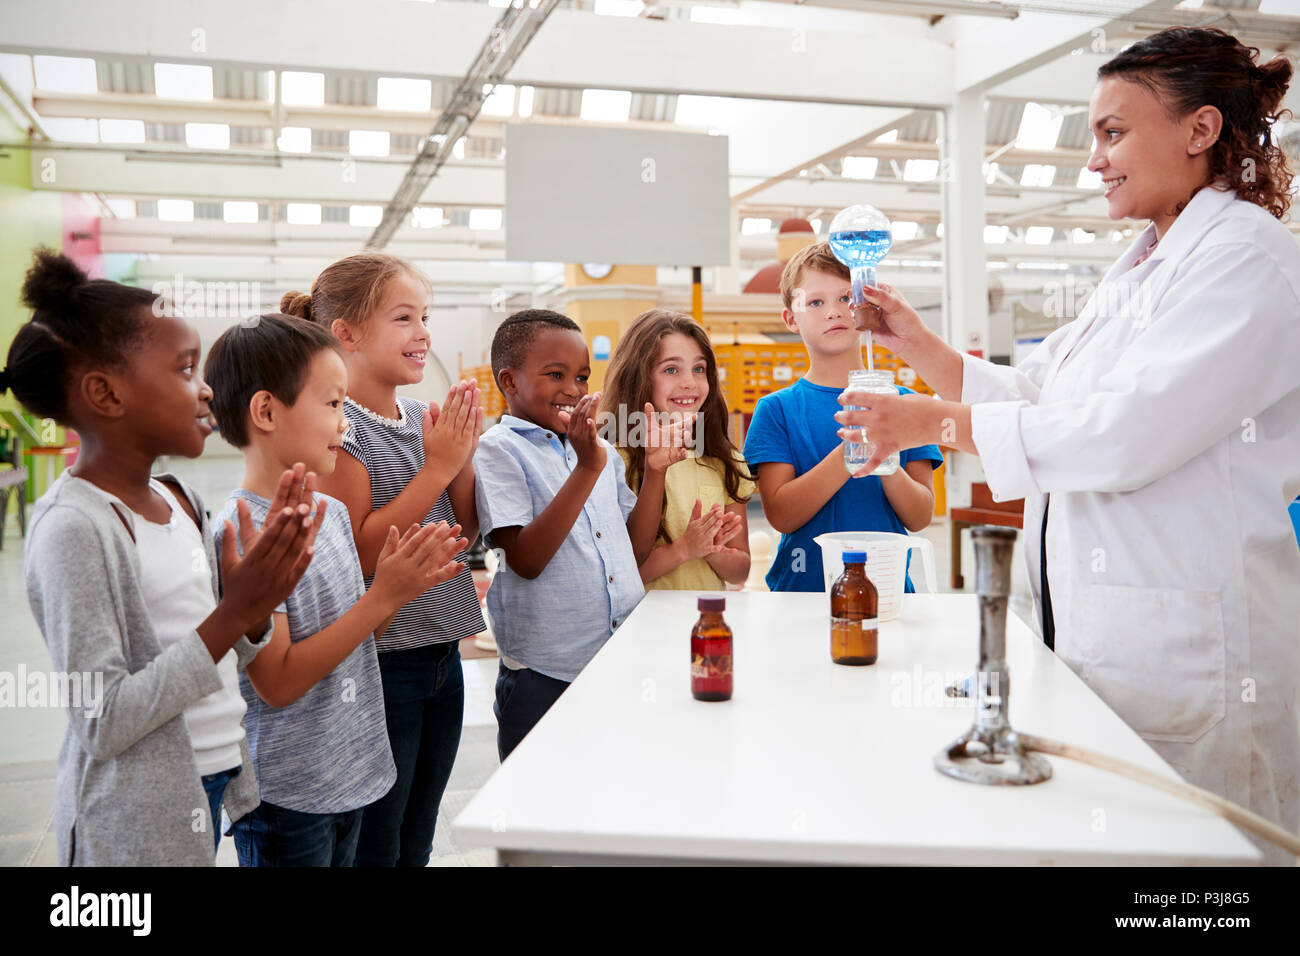 Lab technician showing excited kids a science experiment - Stock Image